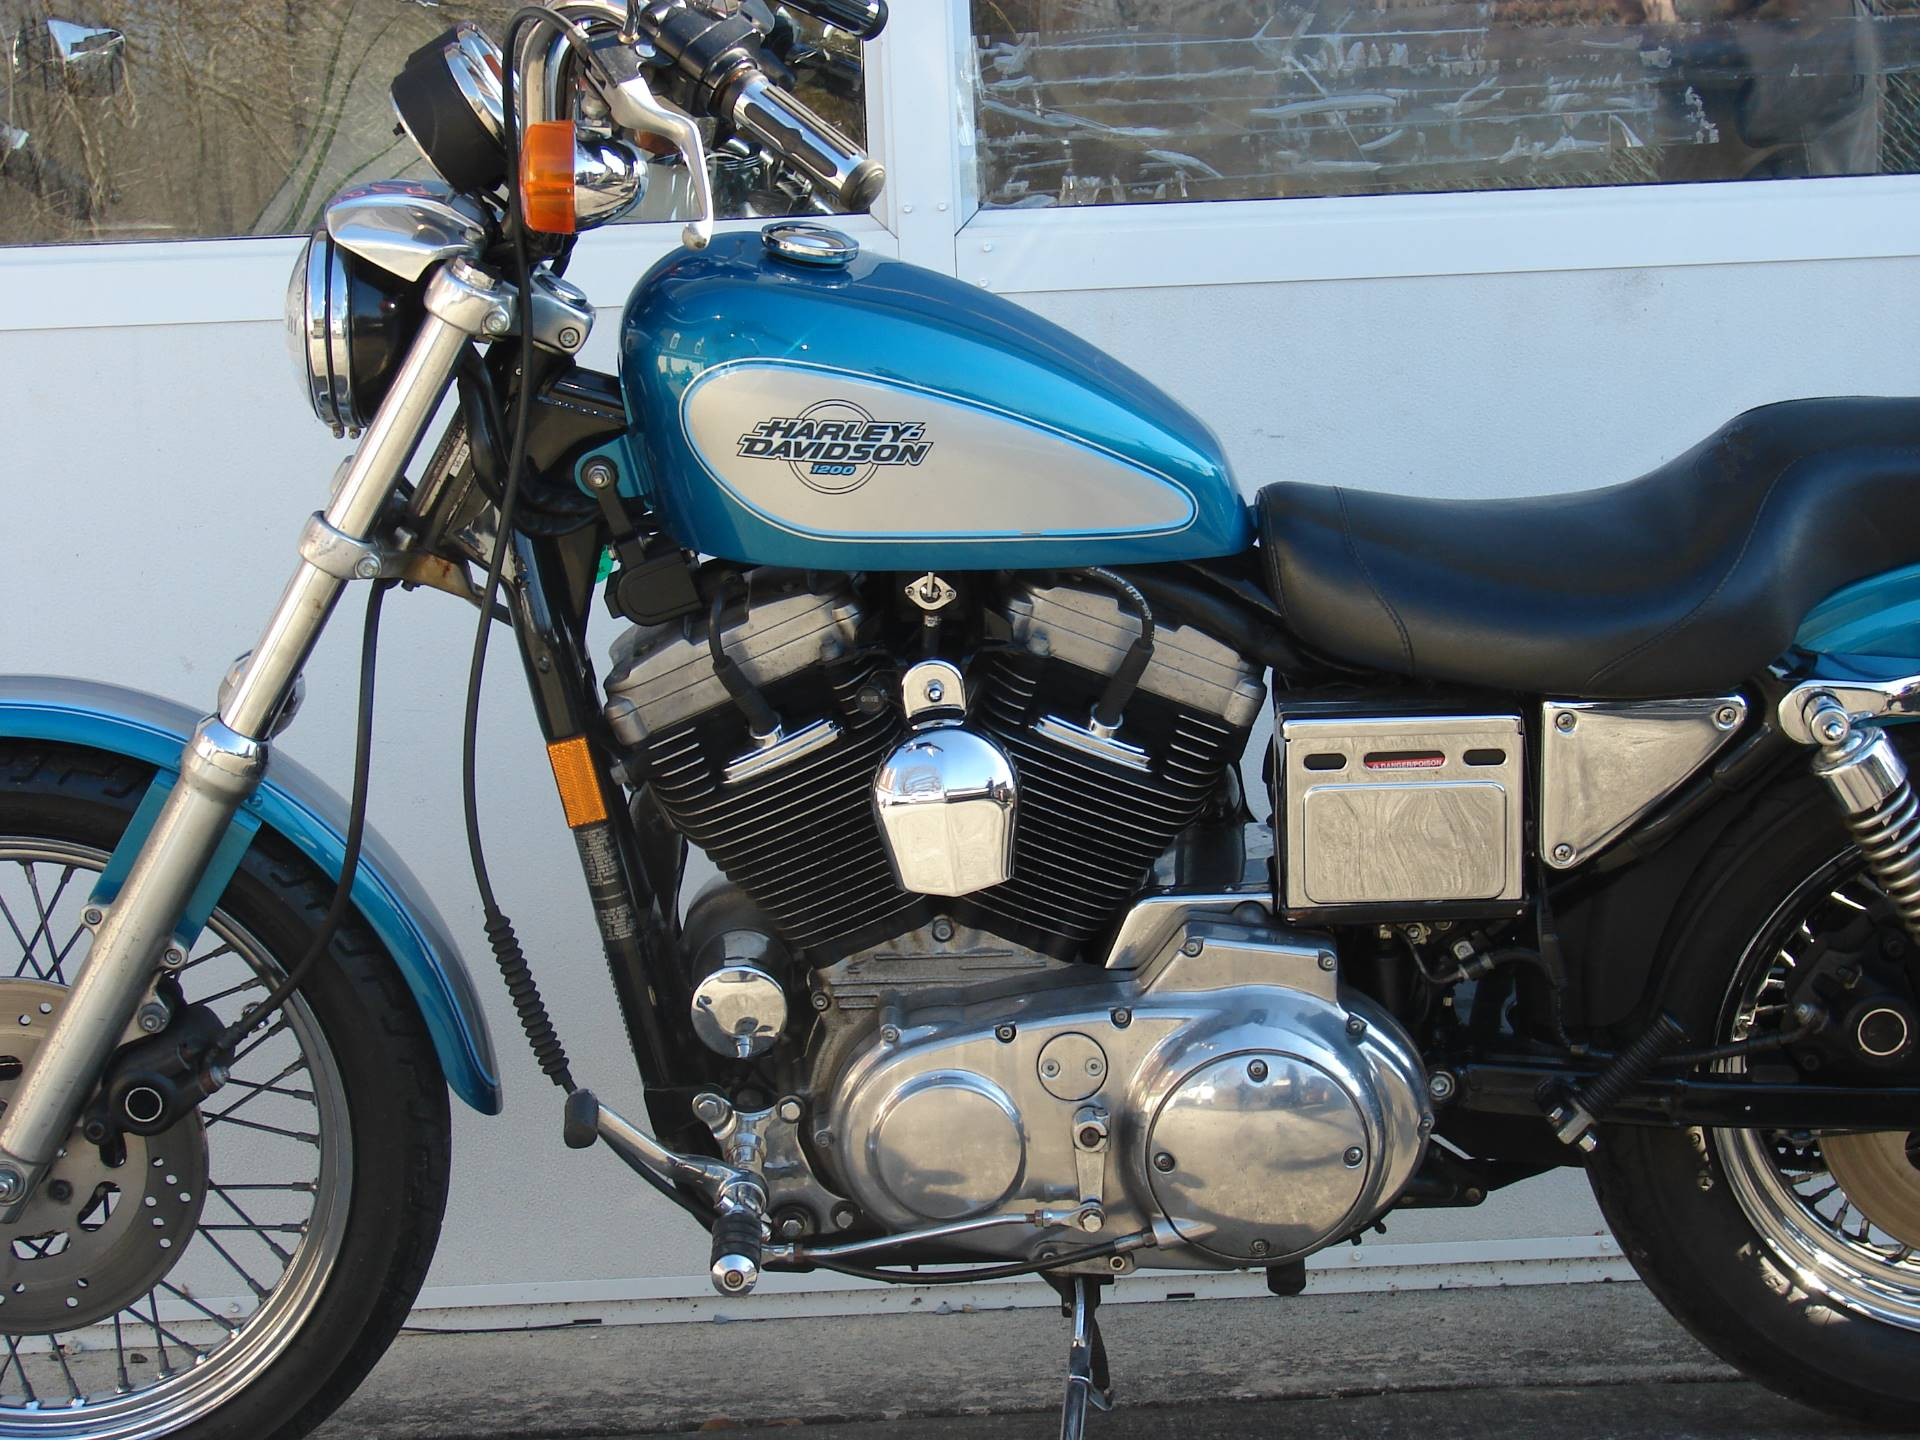 1995 Harley-Davidson 1200 Sportster  (Teal Blue and Silver) in Williamstown, New Jersey - Photo 6